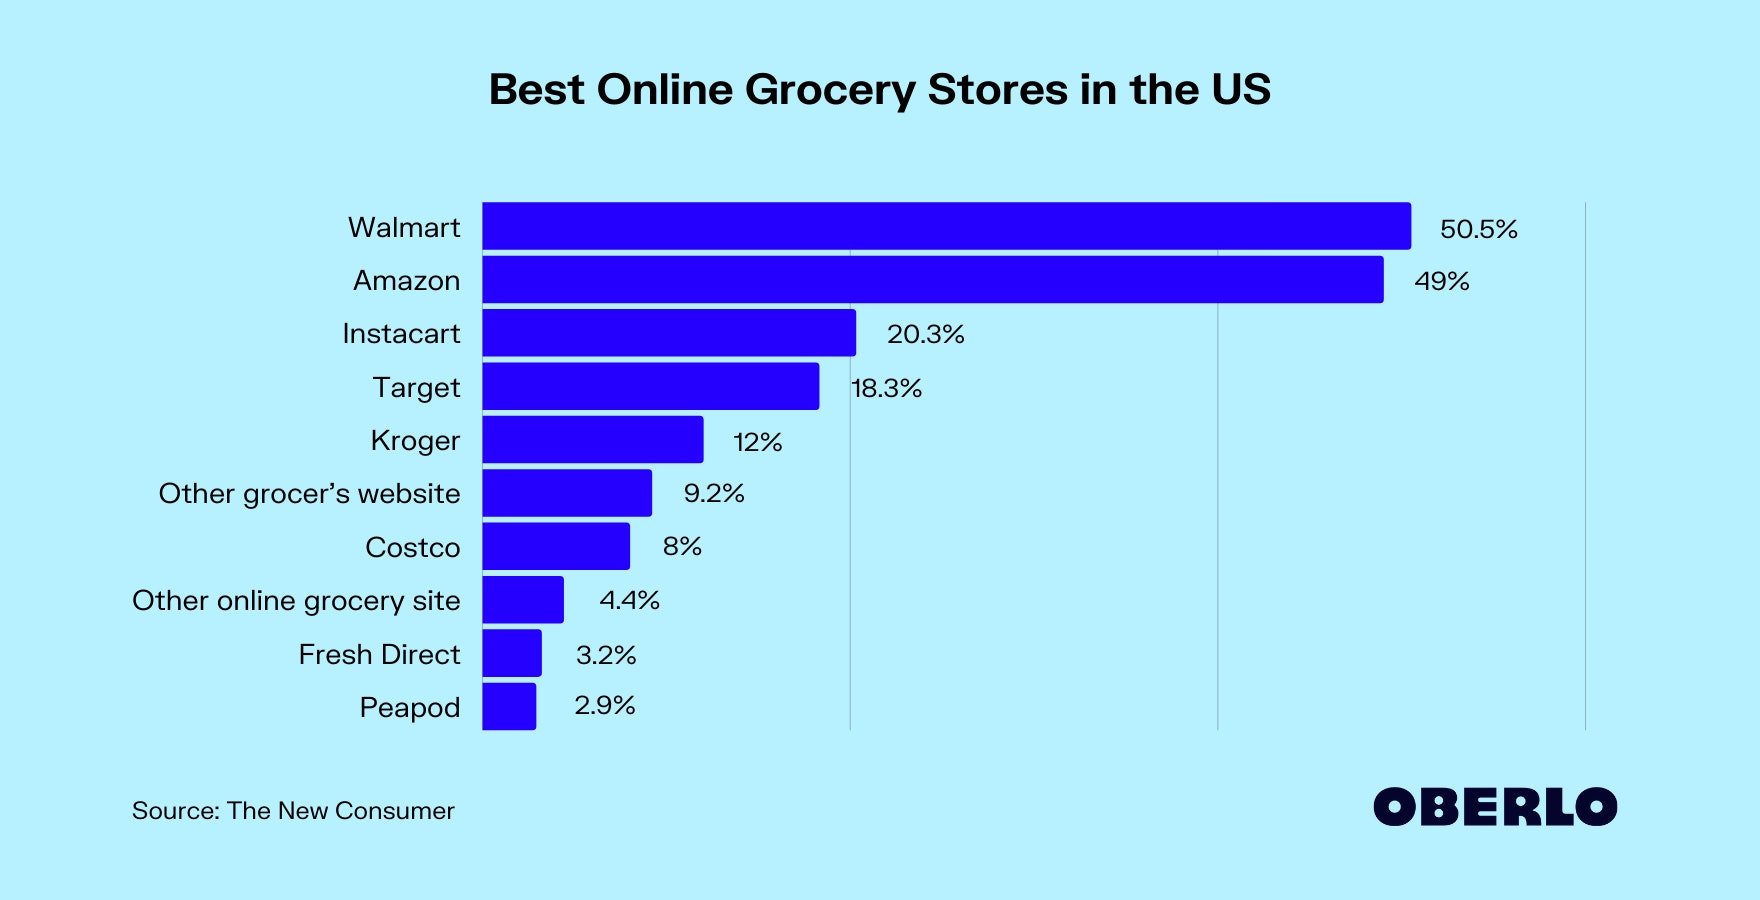 Best Online Grocery Stores in the US